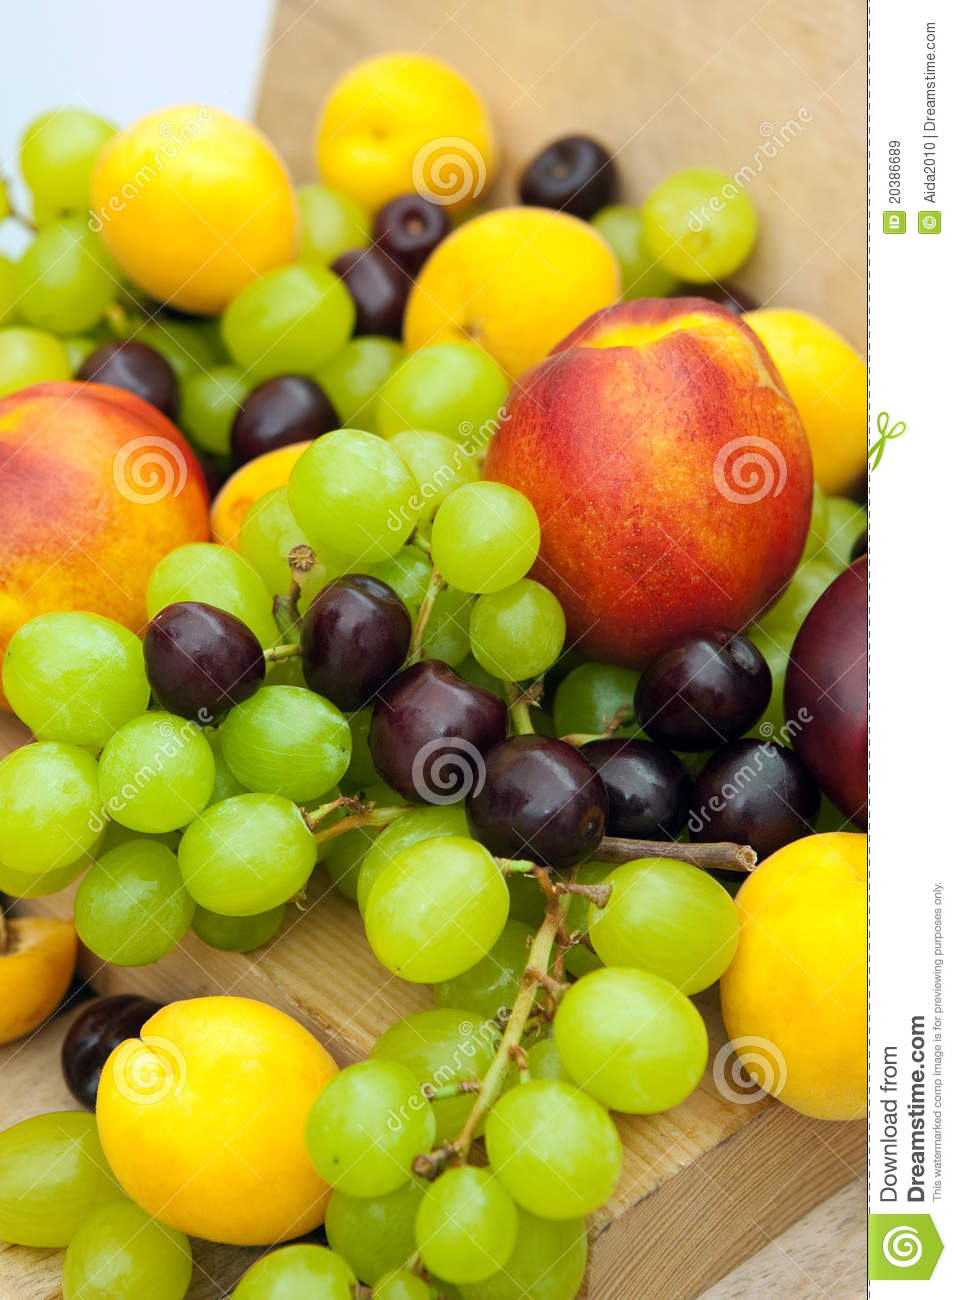 Nectarines grapes apricots and cherries